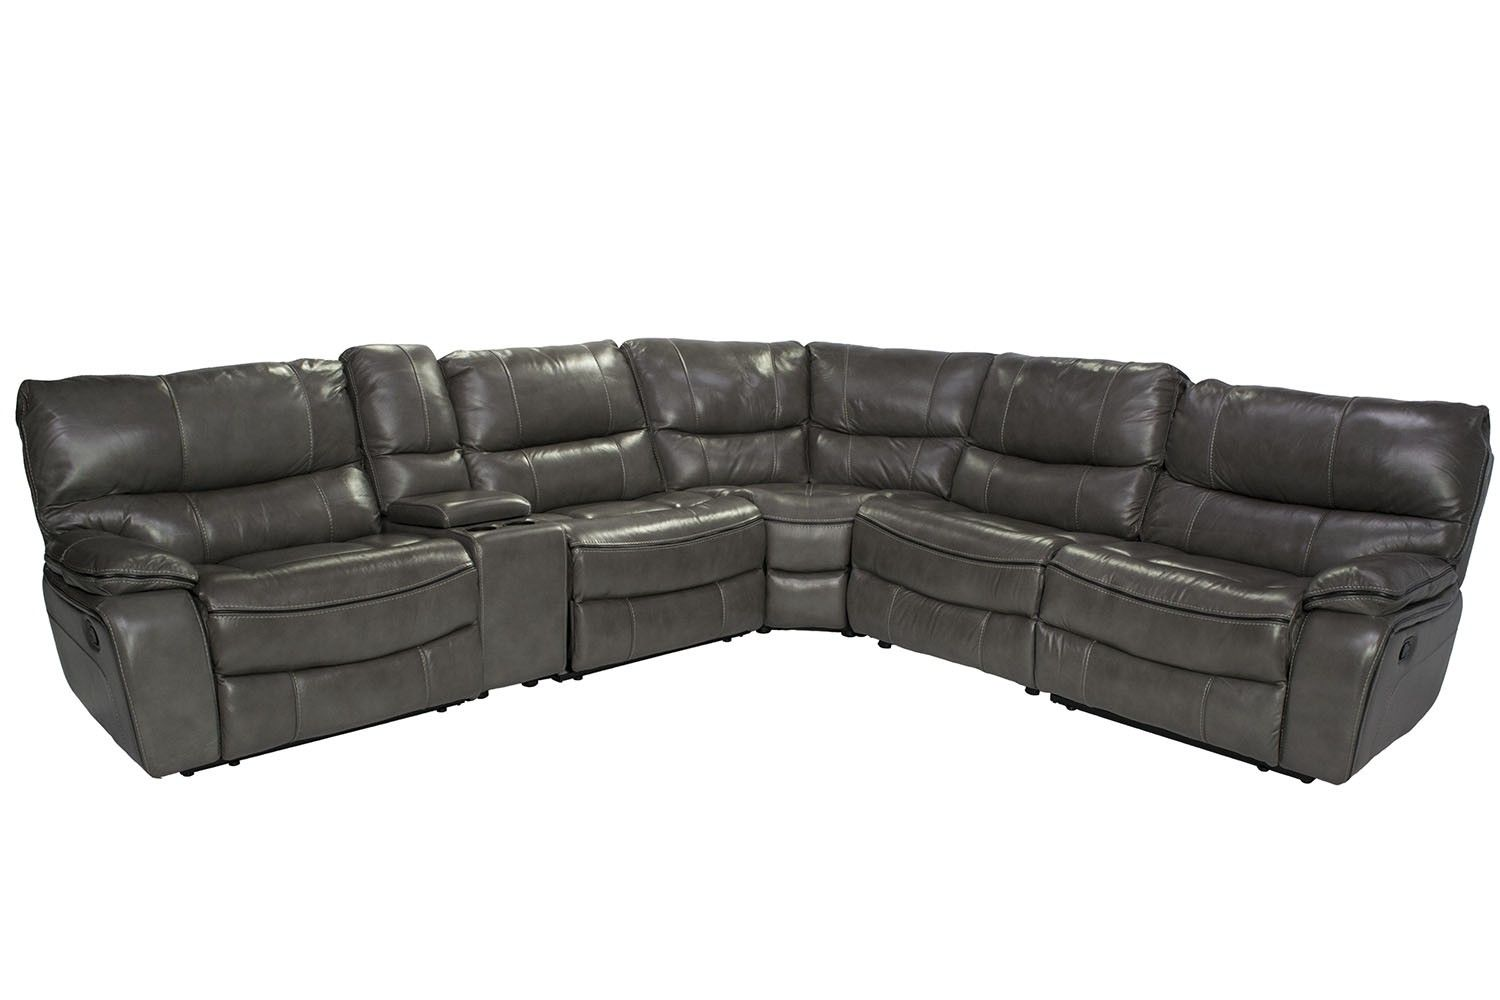 lotus gray 6piece leather seating reclining sectional mor furniture for less sectional living roomsliving room